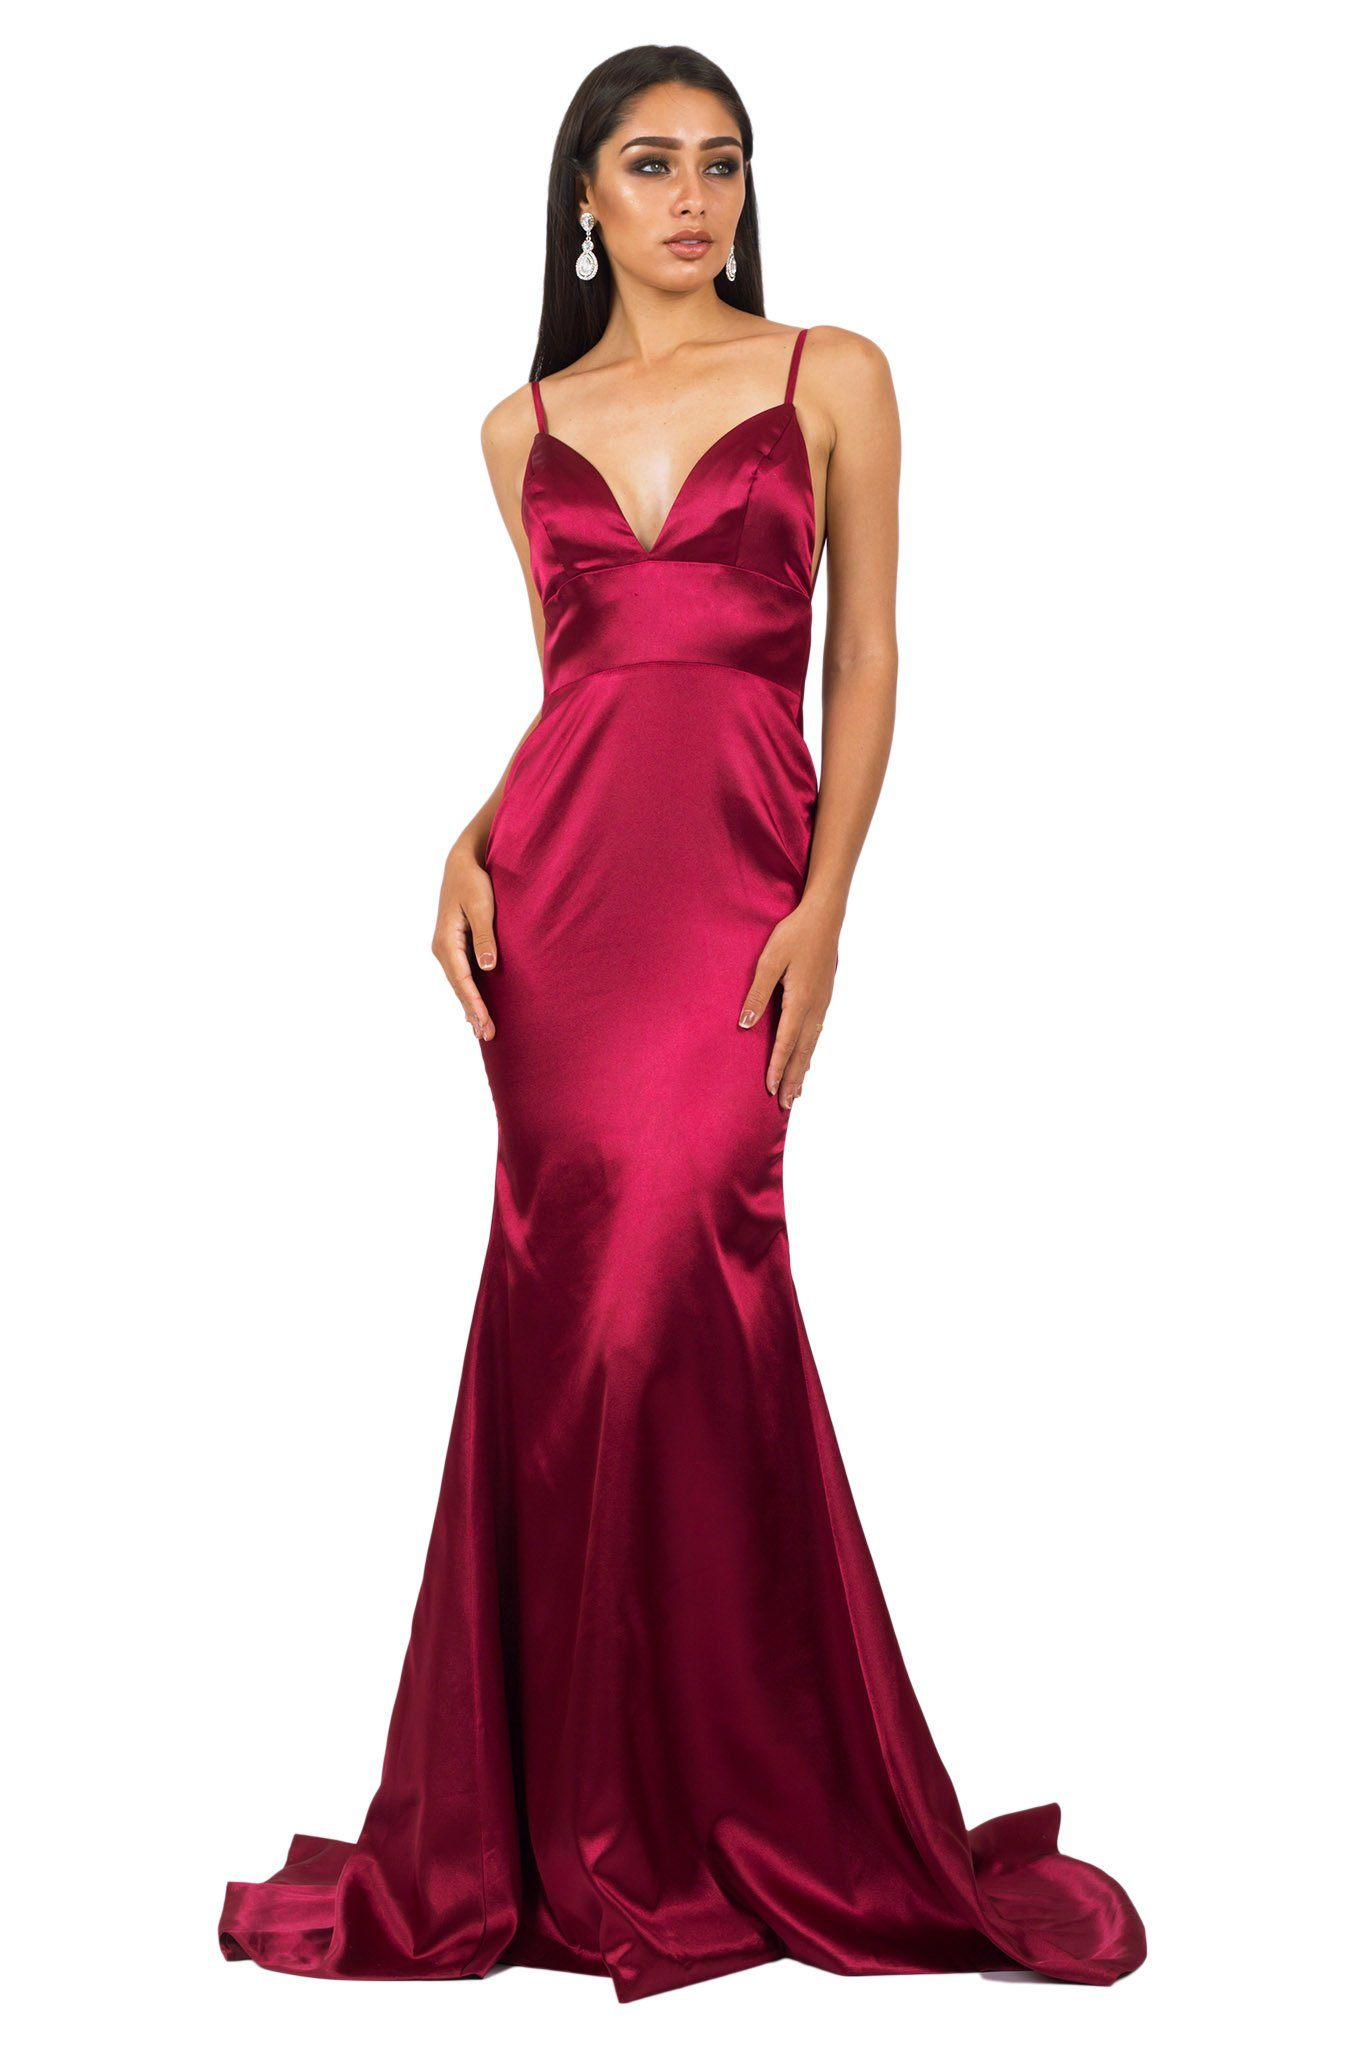 97bf81deb0 Front of deep red burgundy silk satin floor length formal evening  sleeveless gown with V neckline